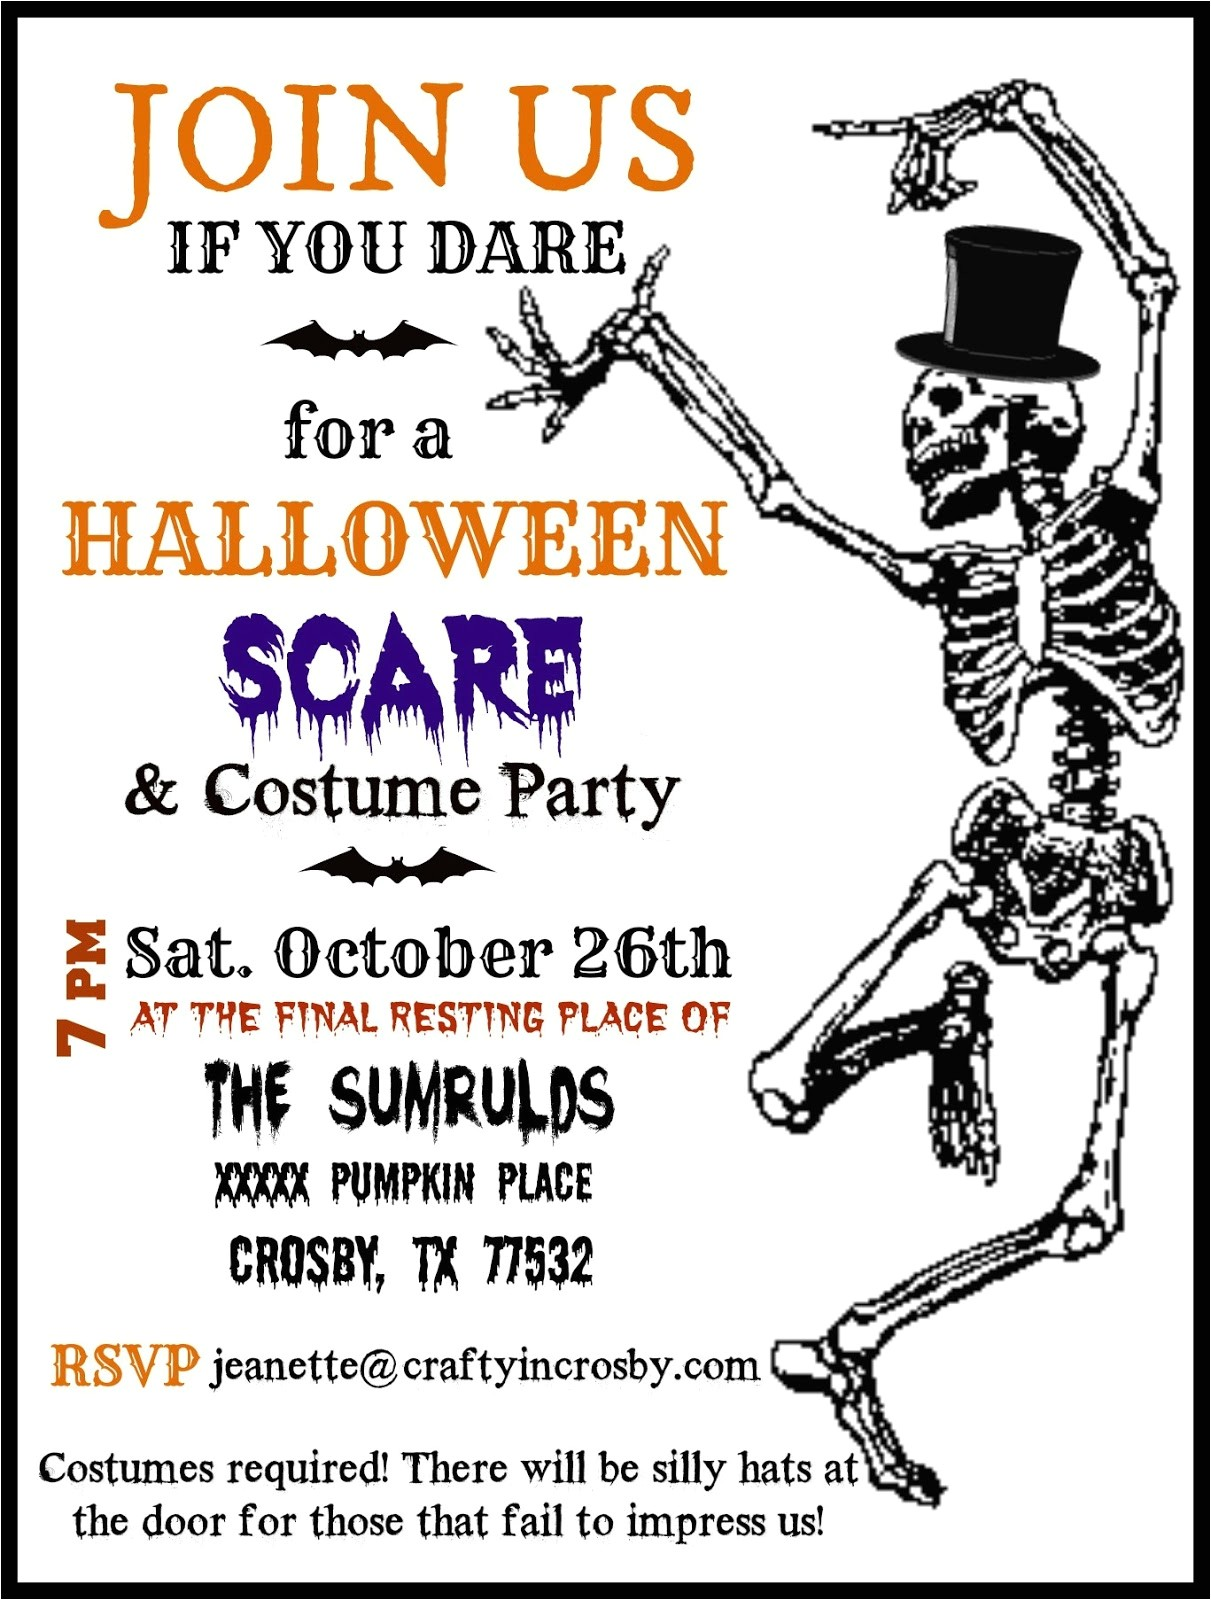 Costume Party Invitation Template Crafty In Crosby Halloween Party Invitations with Template